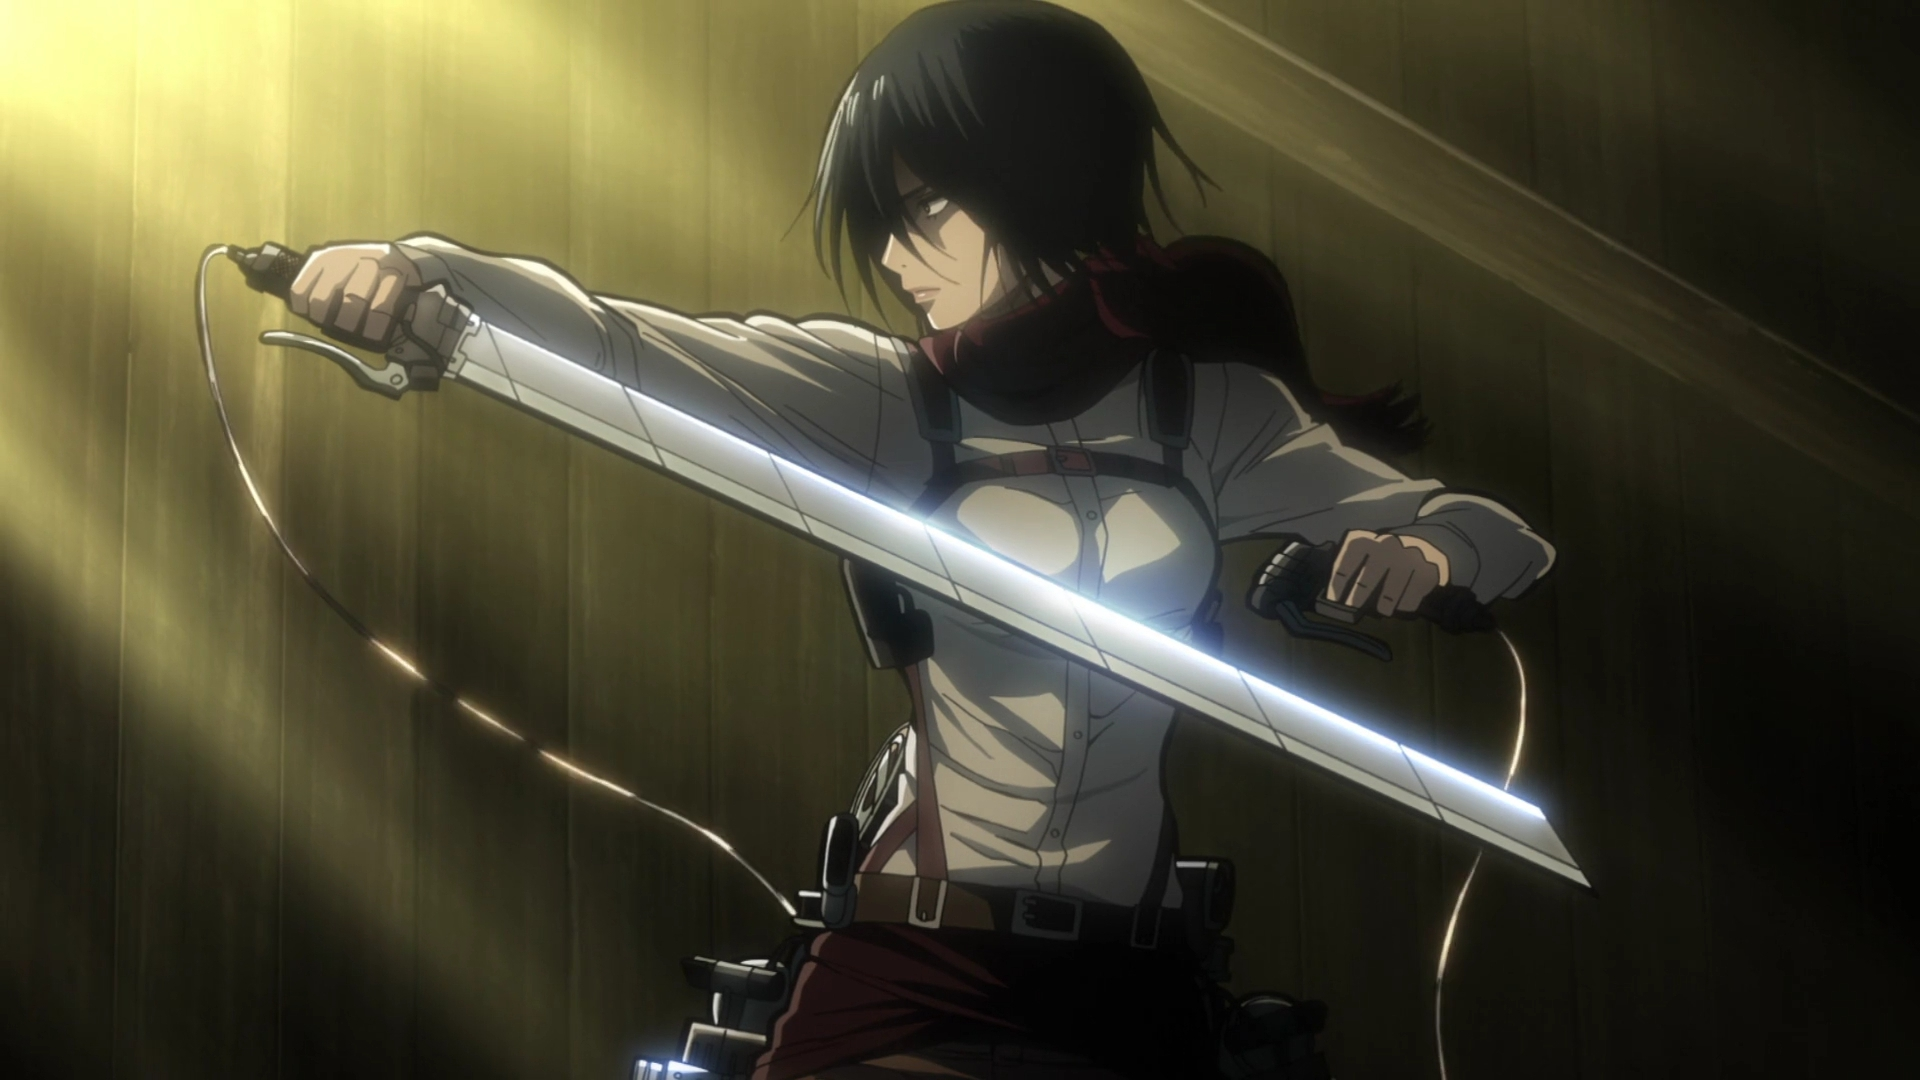 Mikasa Ackerman Hd Background 1920x1080 Wallpaper Teahub Io